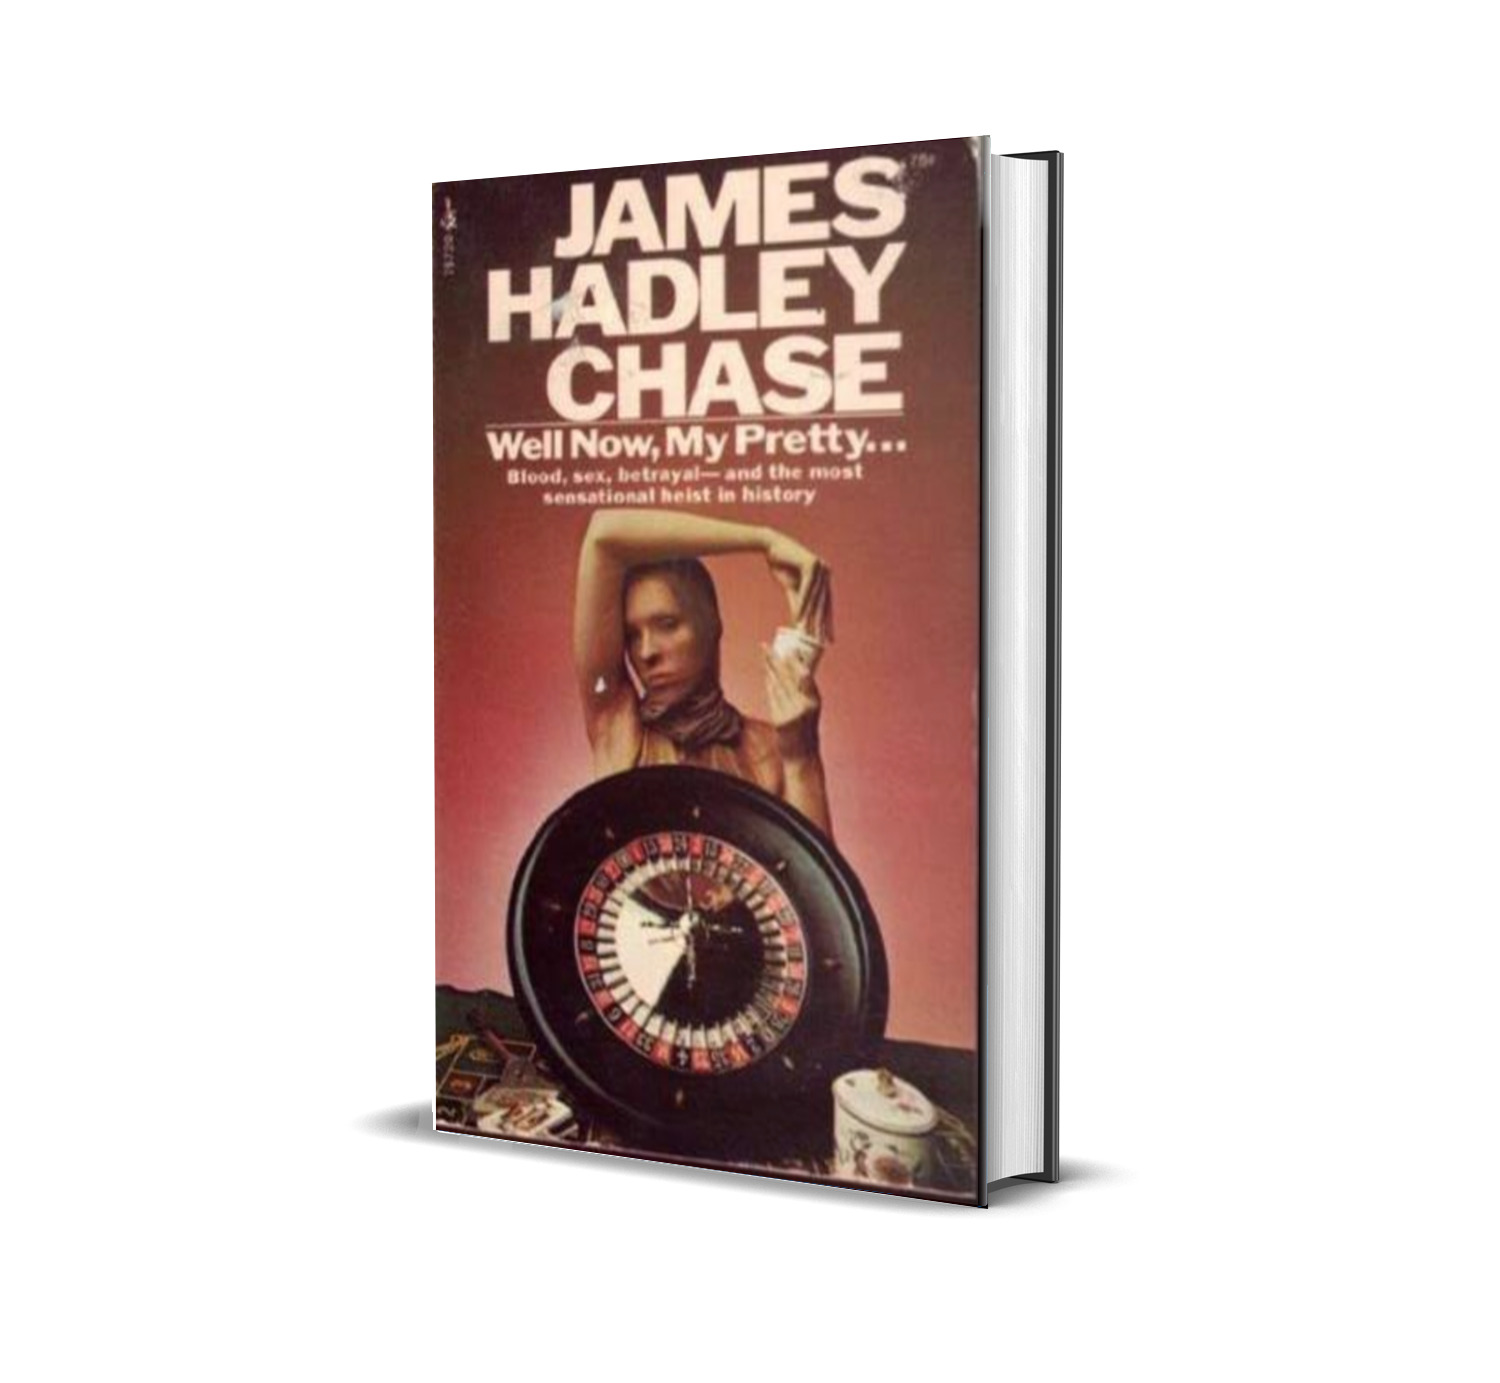 WELL NOW, MY PRETTY JAMES HADLEY CHASE